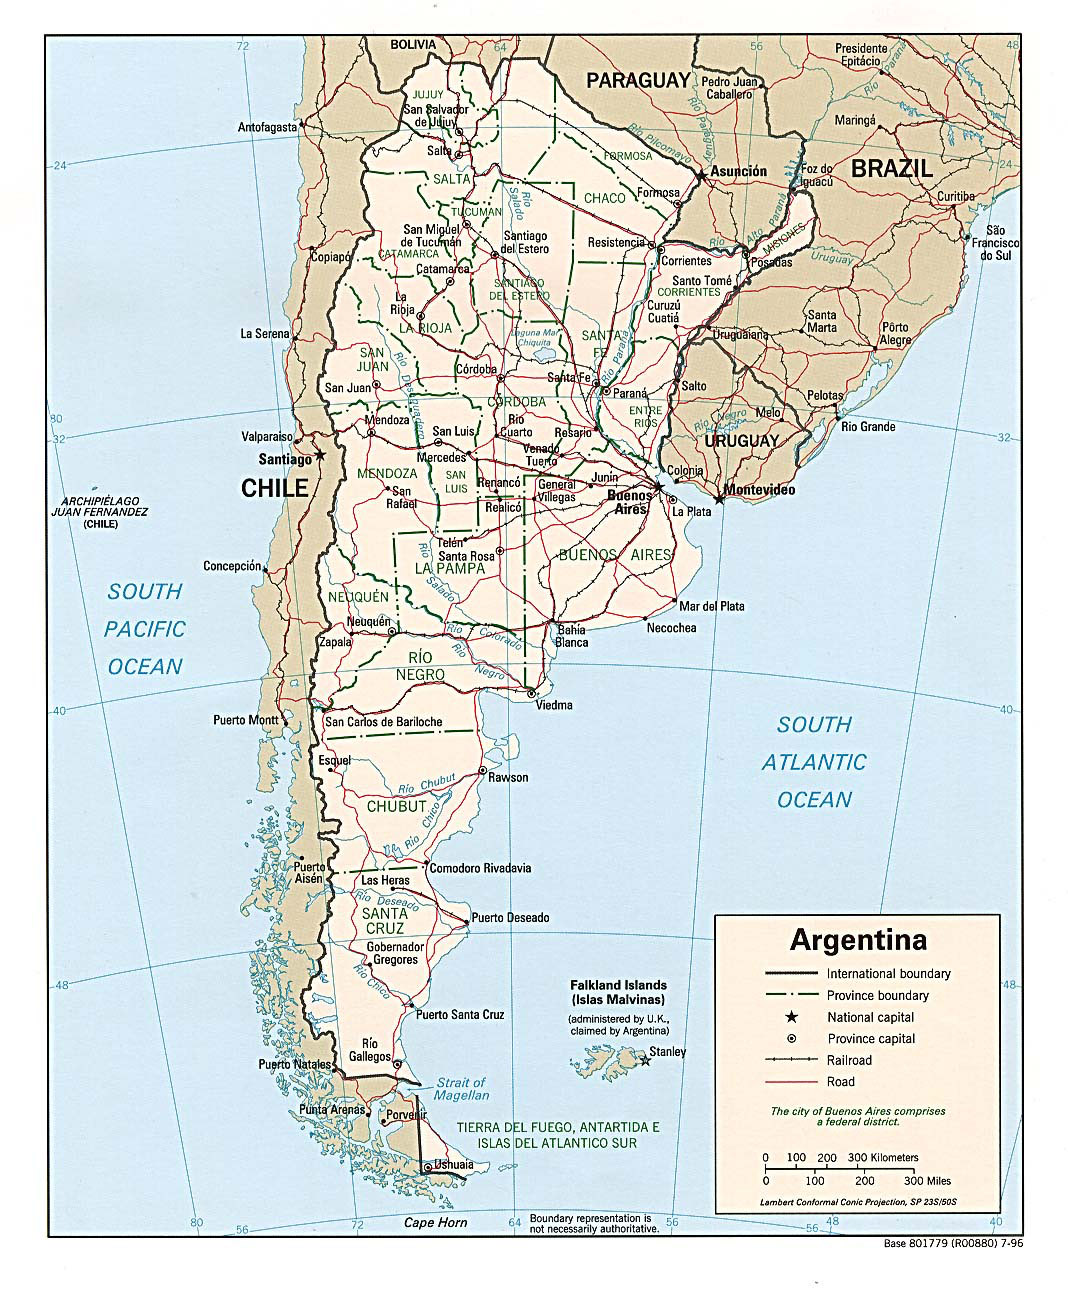 Large detailed political and administrative map of Argentina